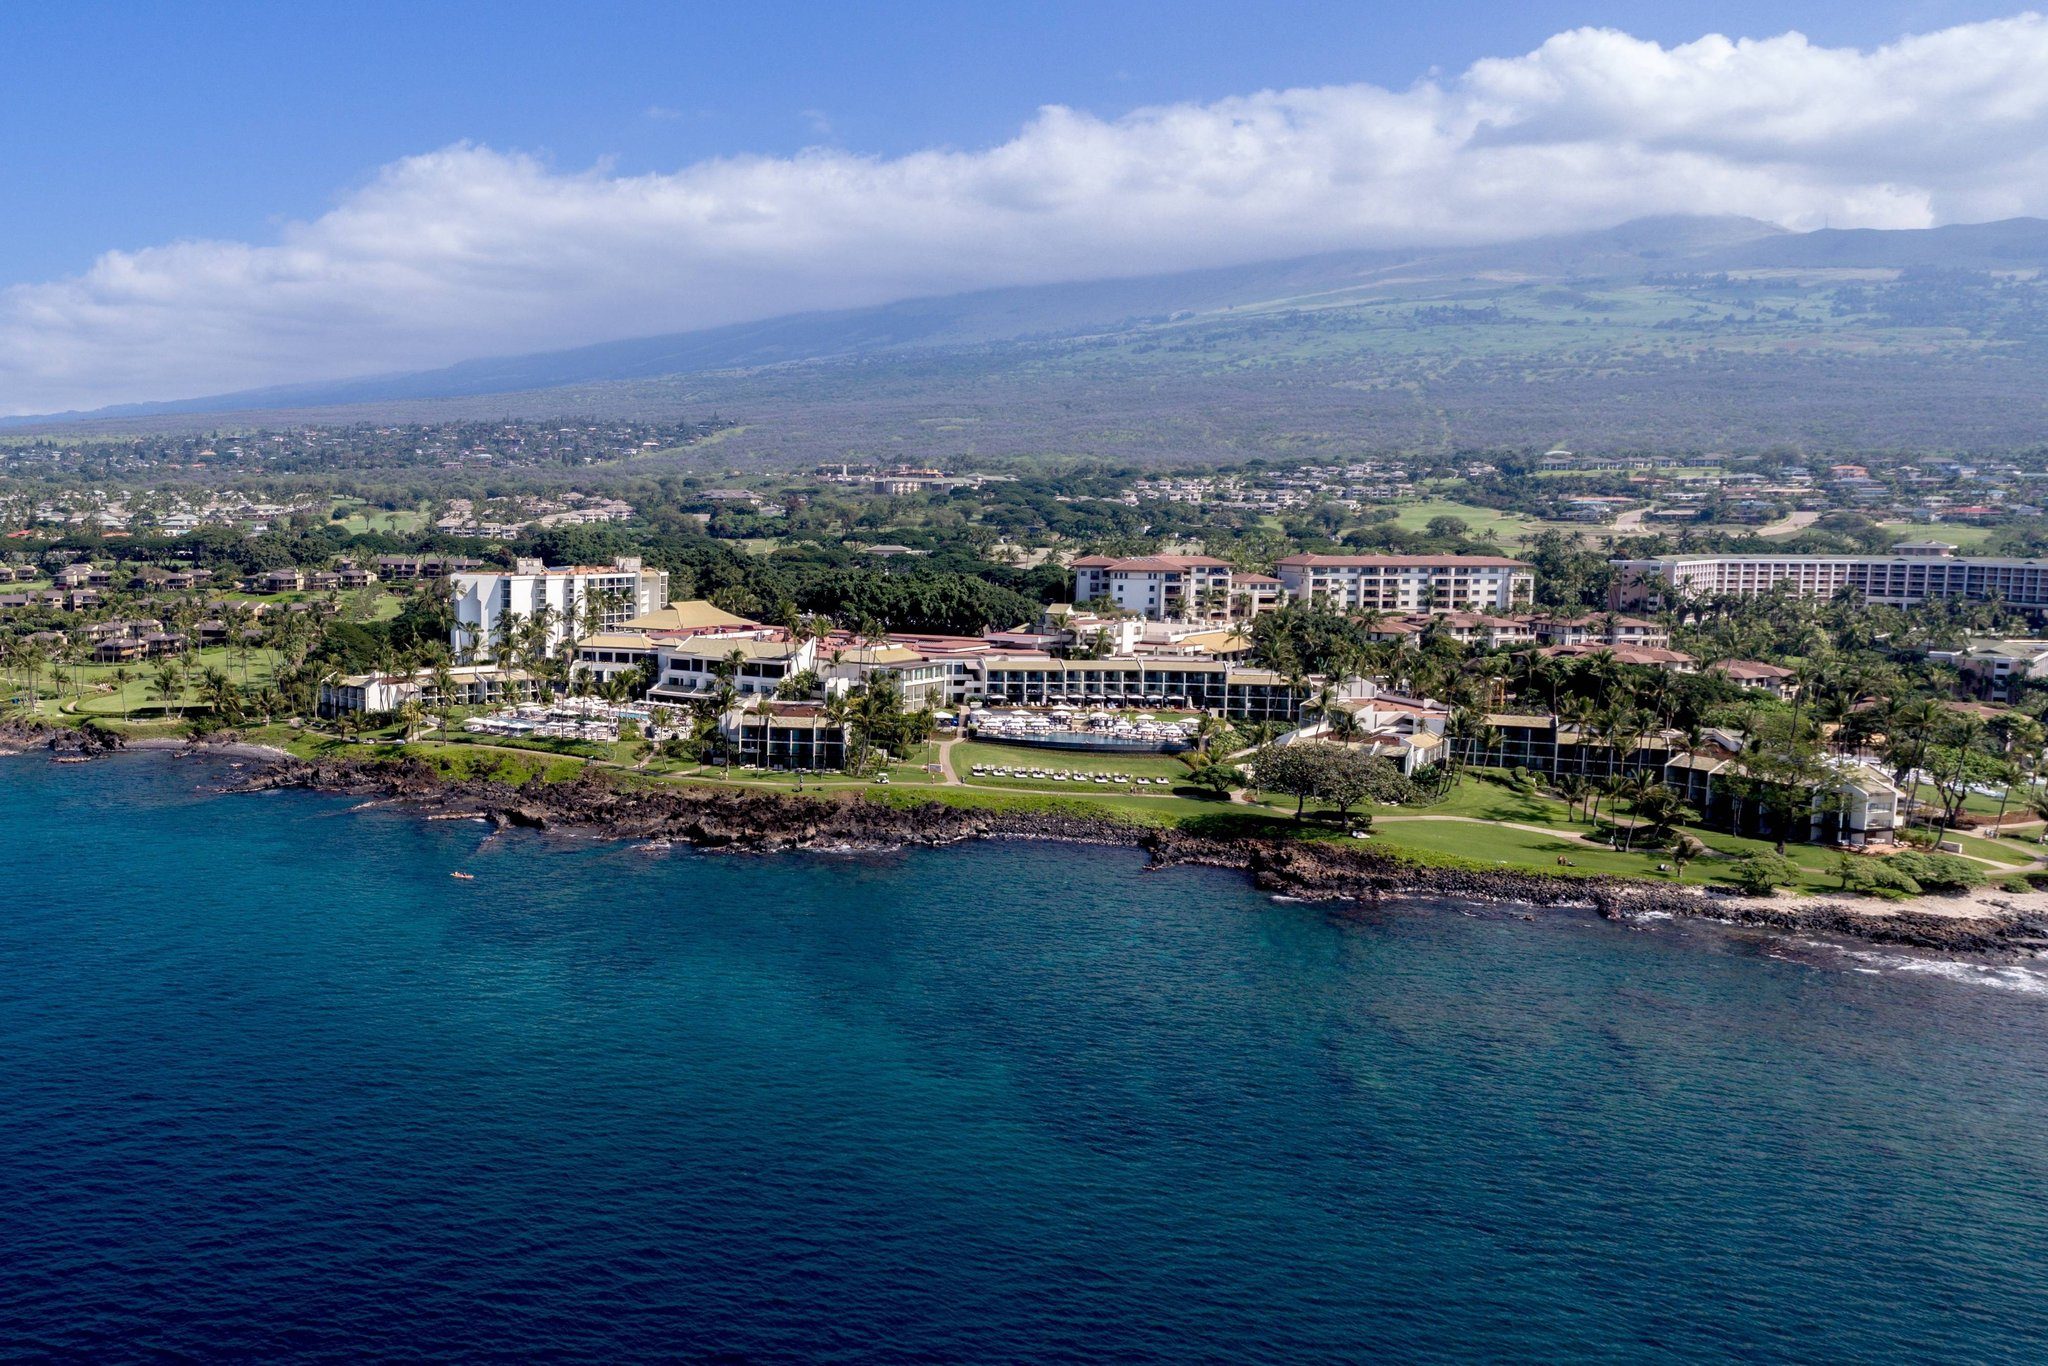 Wailea Beach Resort - Marriott Maui